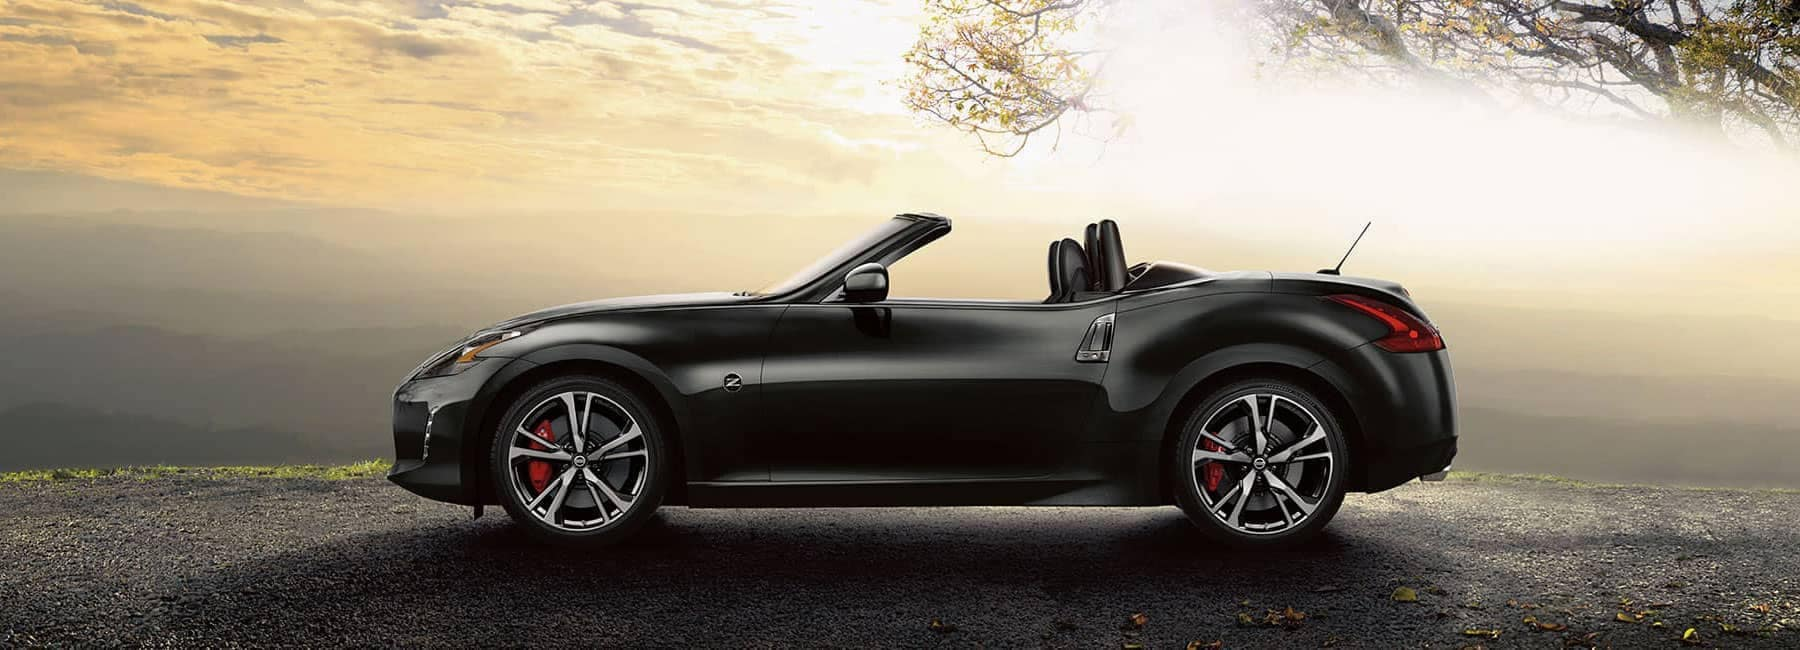 Boch Nissan is a Car Dealership near Canton, MA | Black 2019 Nissan 370Z Convertable parked at sunset